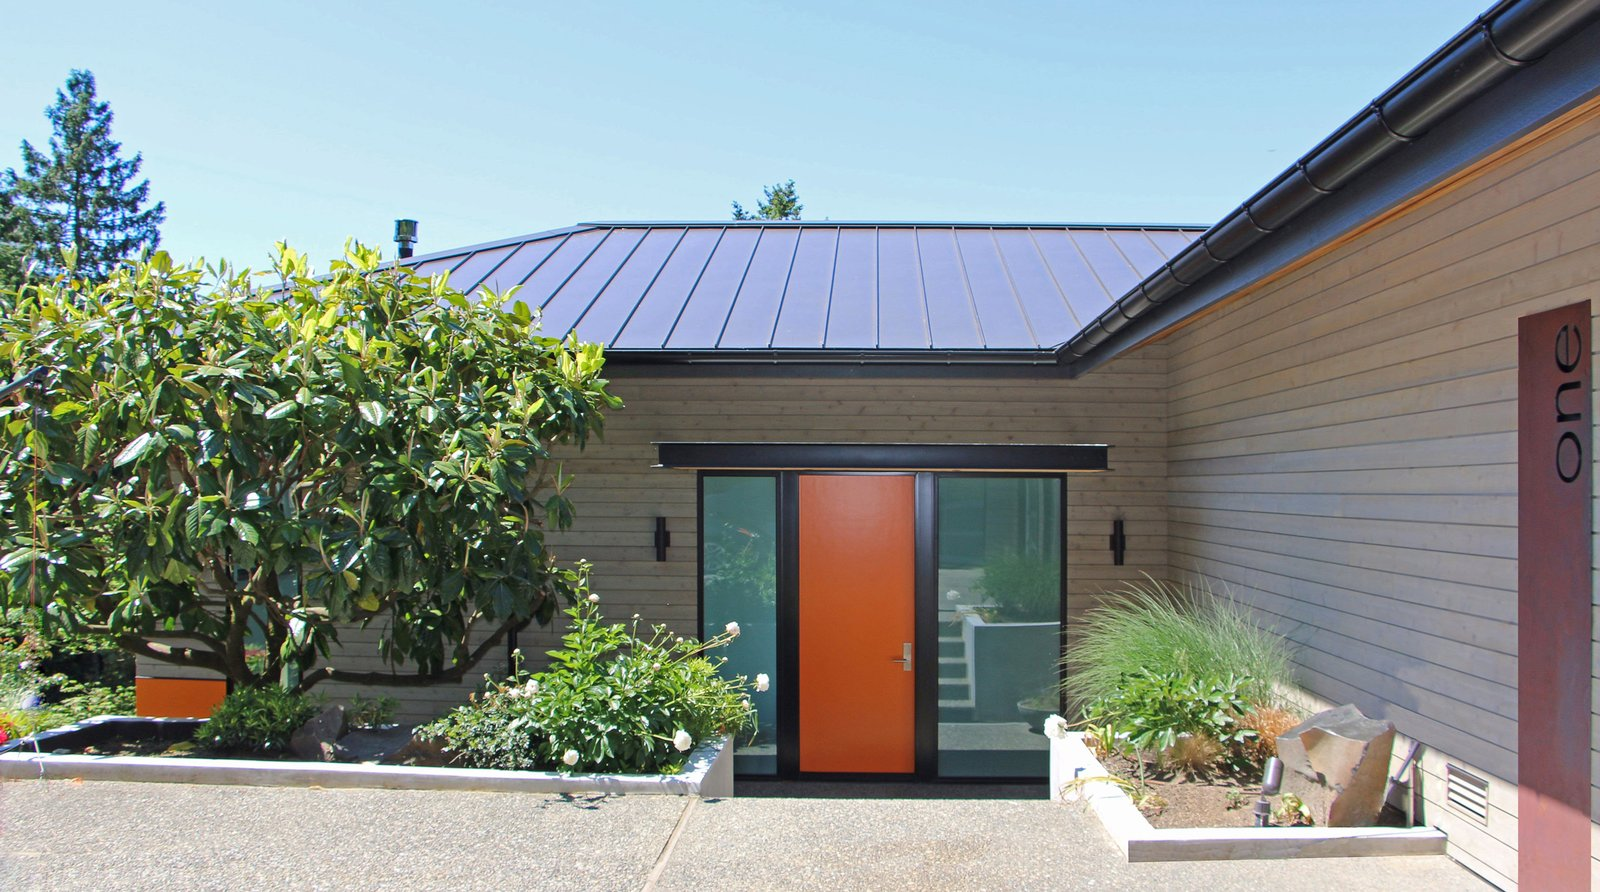 Brook Bay Front Entry Tagged: Exterior, House, Metal Roof Material, Wood Siding Material, and Hipped RoofLine.  Brook Bay Remodel by allison hogue